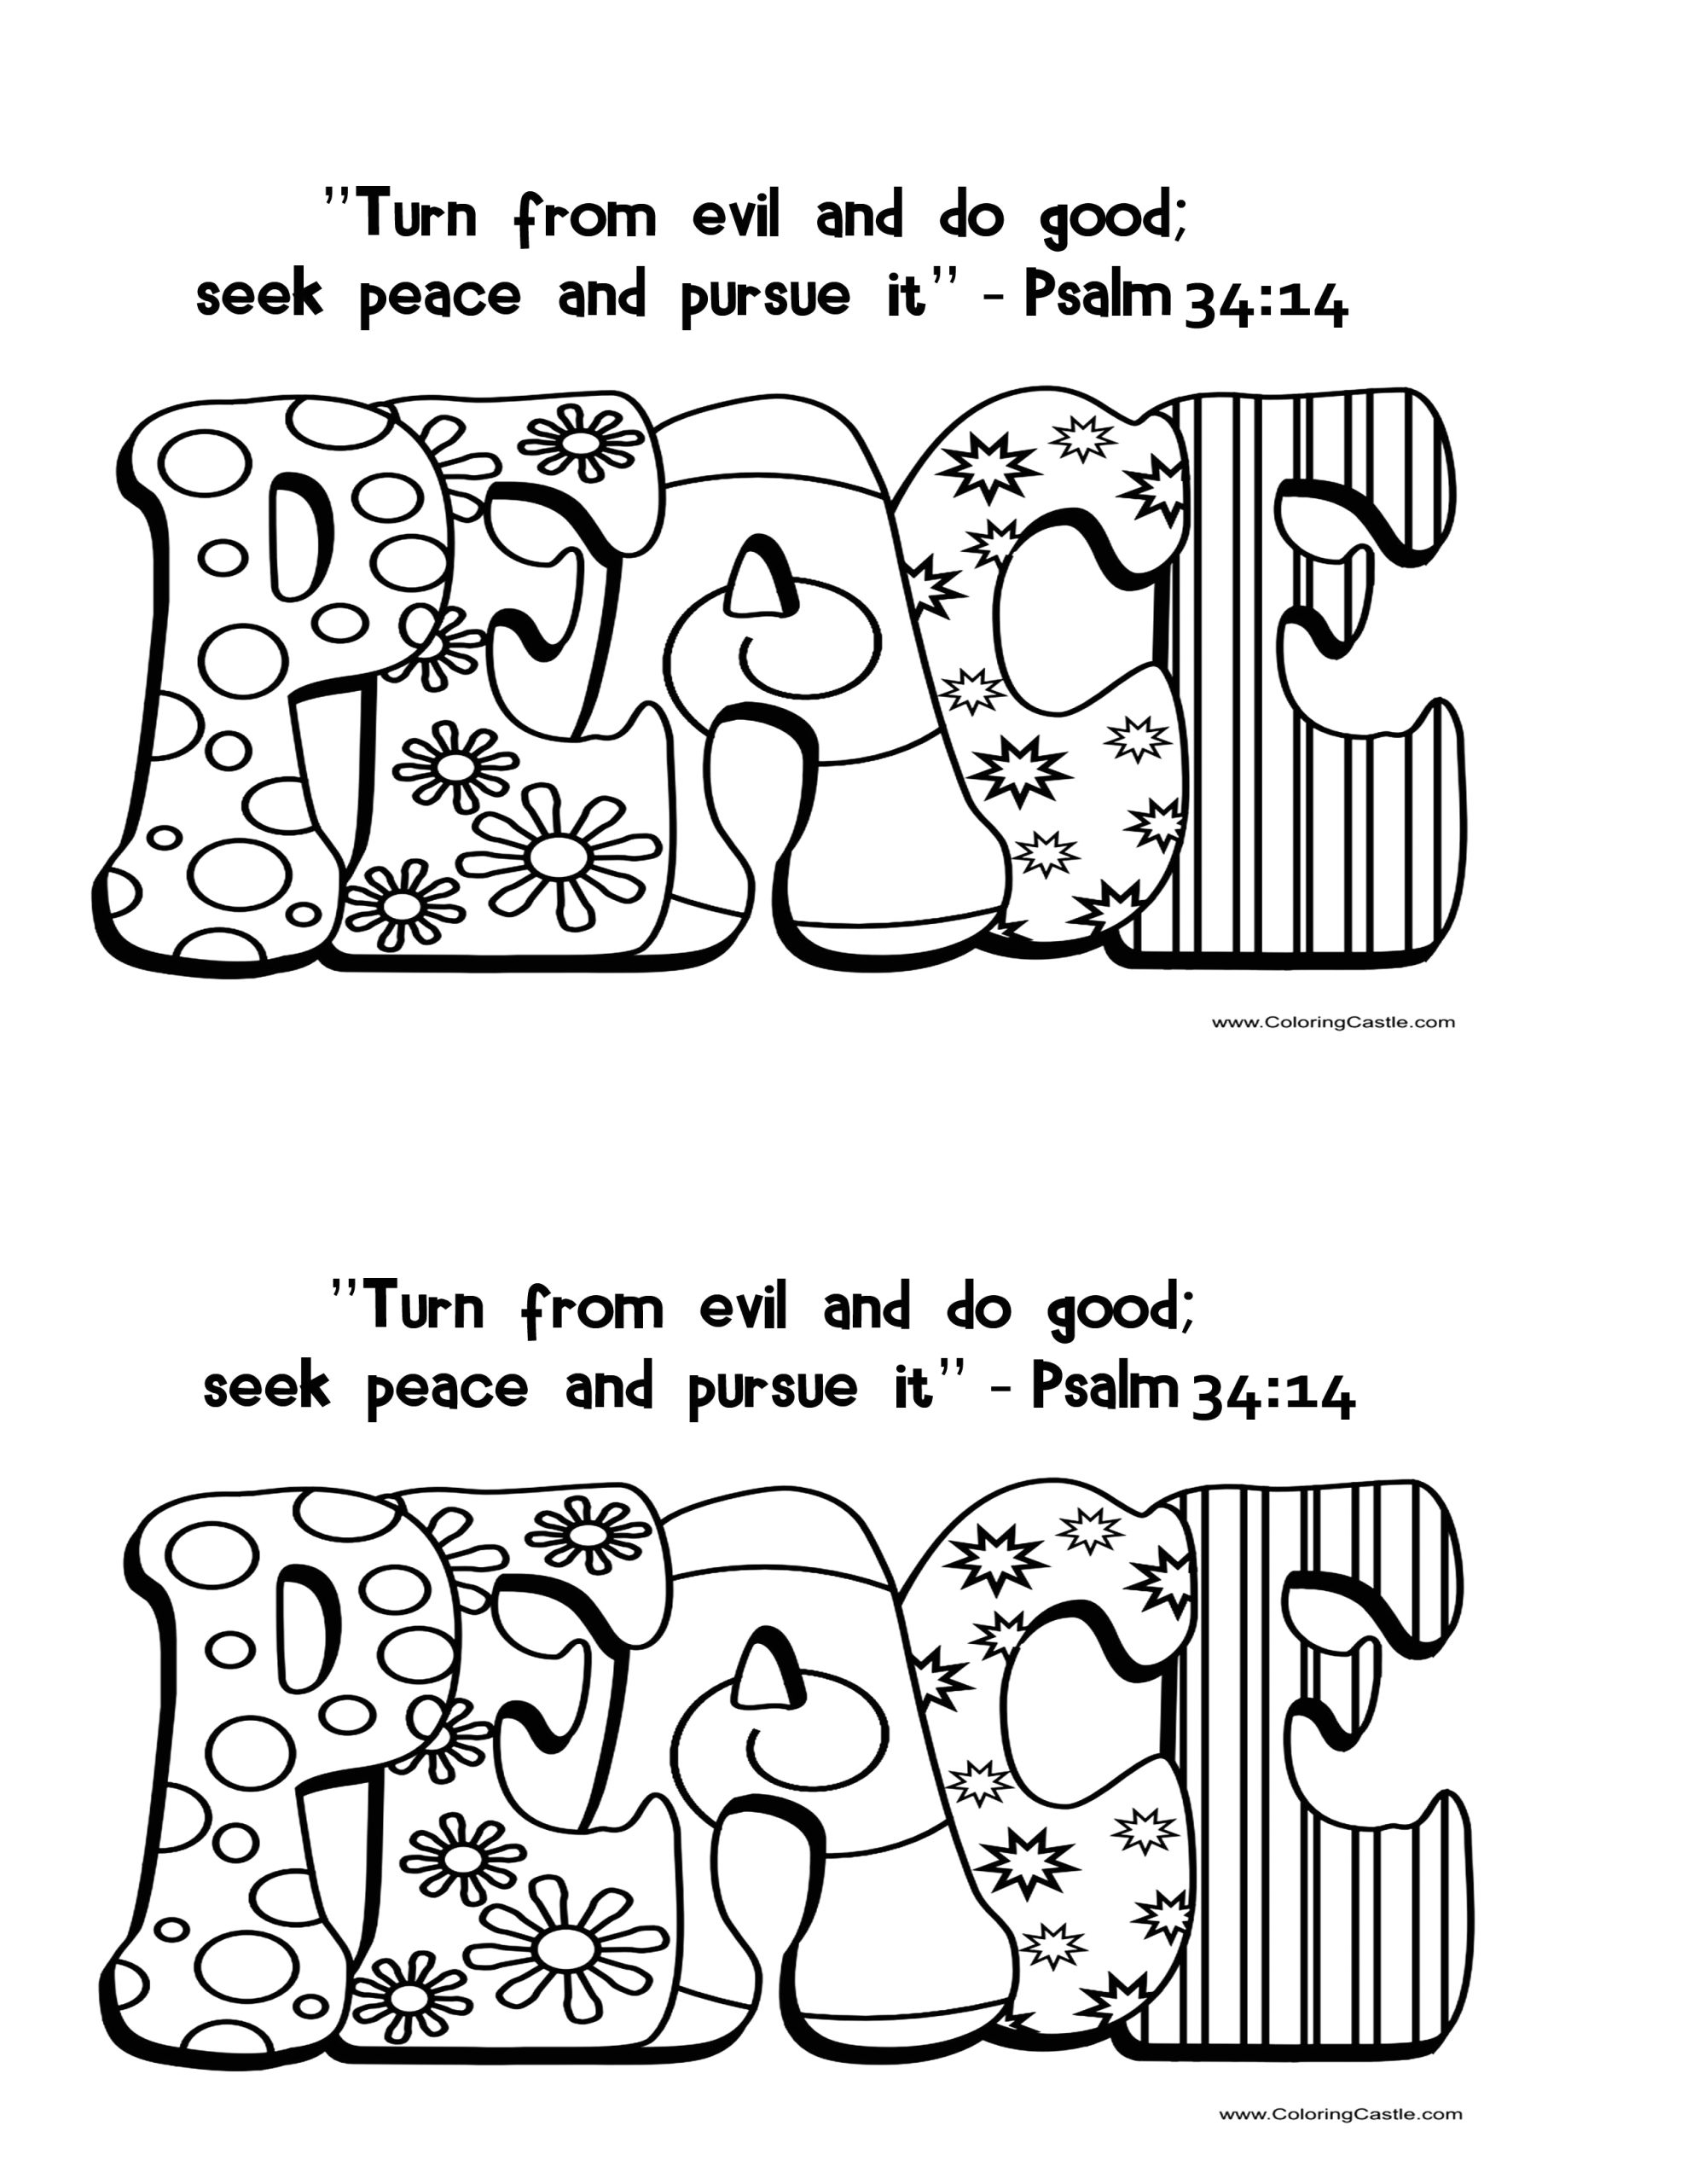 Fruit Of the Spirit Peace Coloring Page Pin by Crystal Gladson On Bible Galatians